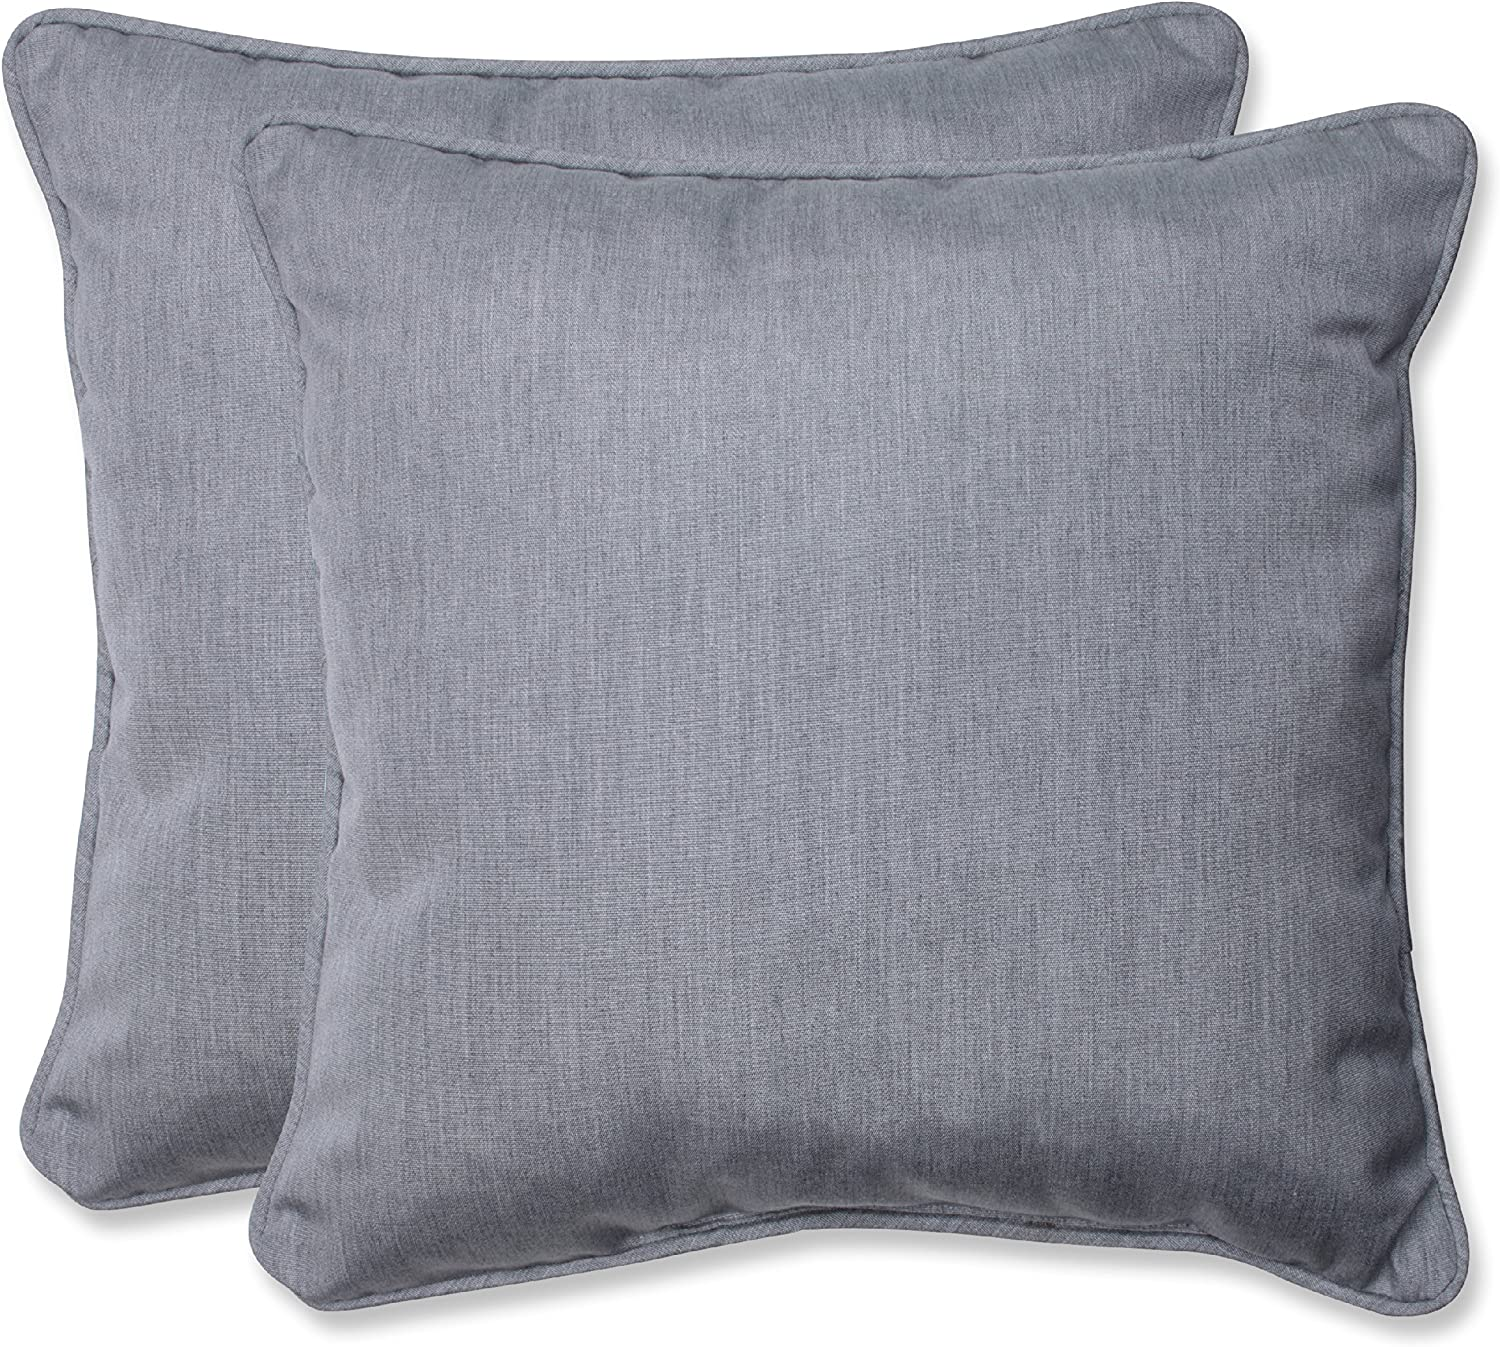 Pillow Perfect Outdoor Indoor Canvas Granite Throw Pillows 18 5 X 18 5 Grey 2 Pack Home Kitchen Amazon Com